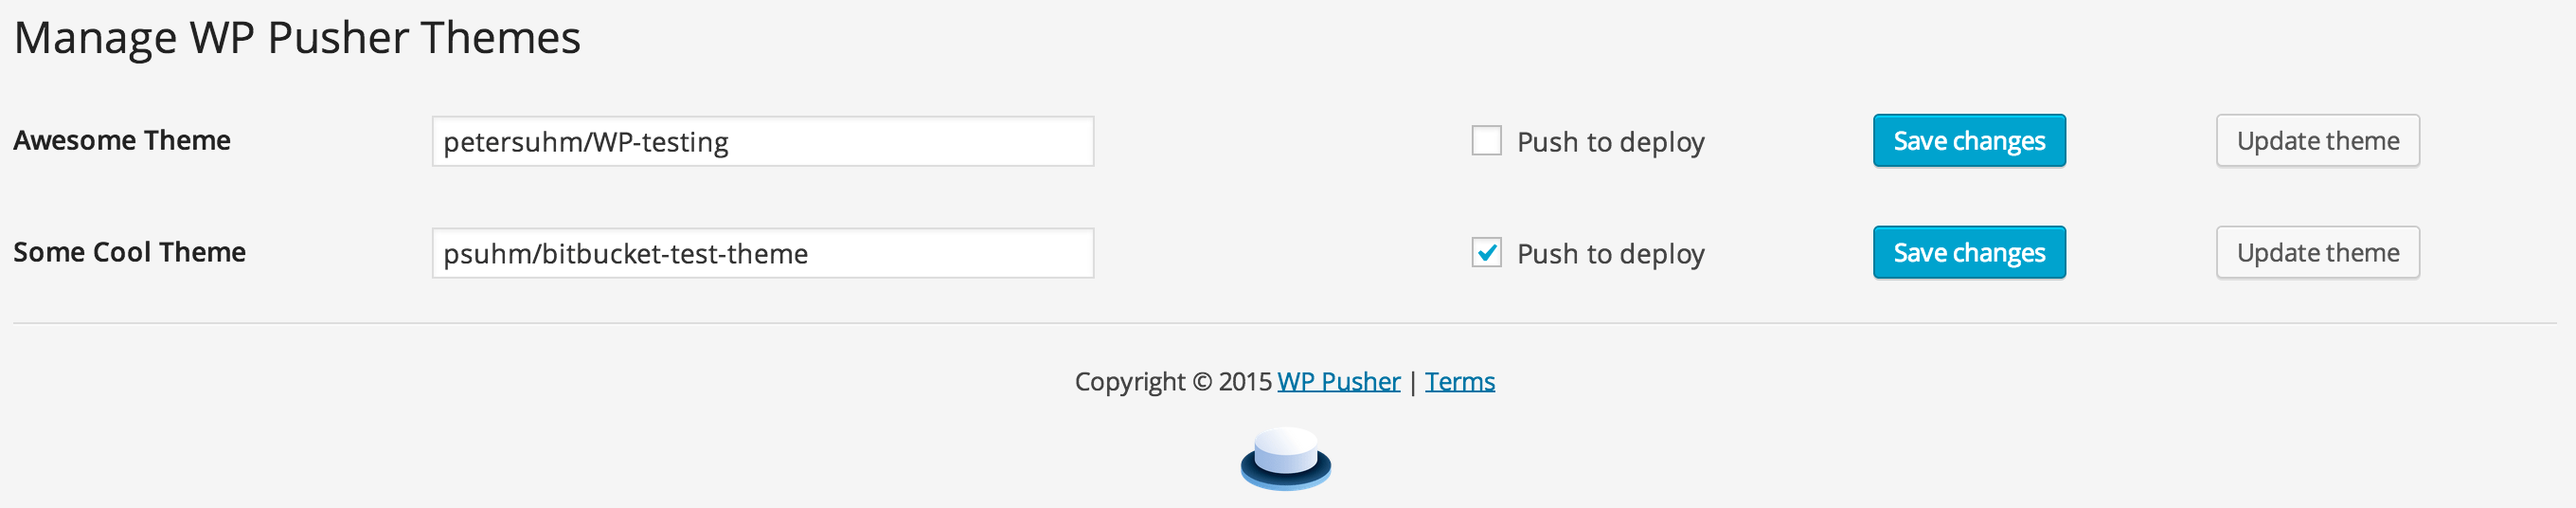 manage-wp-pusher-themes.png a553fe4dbde6